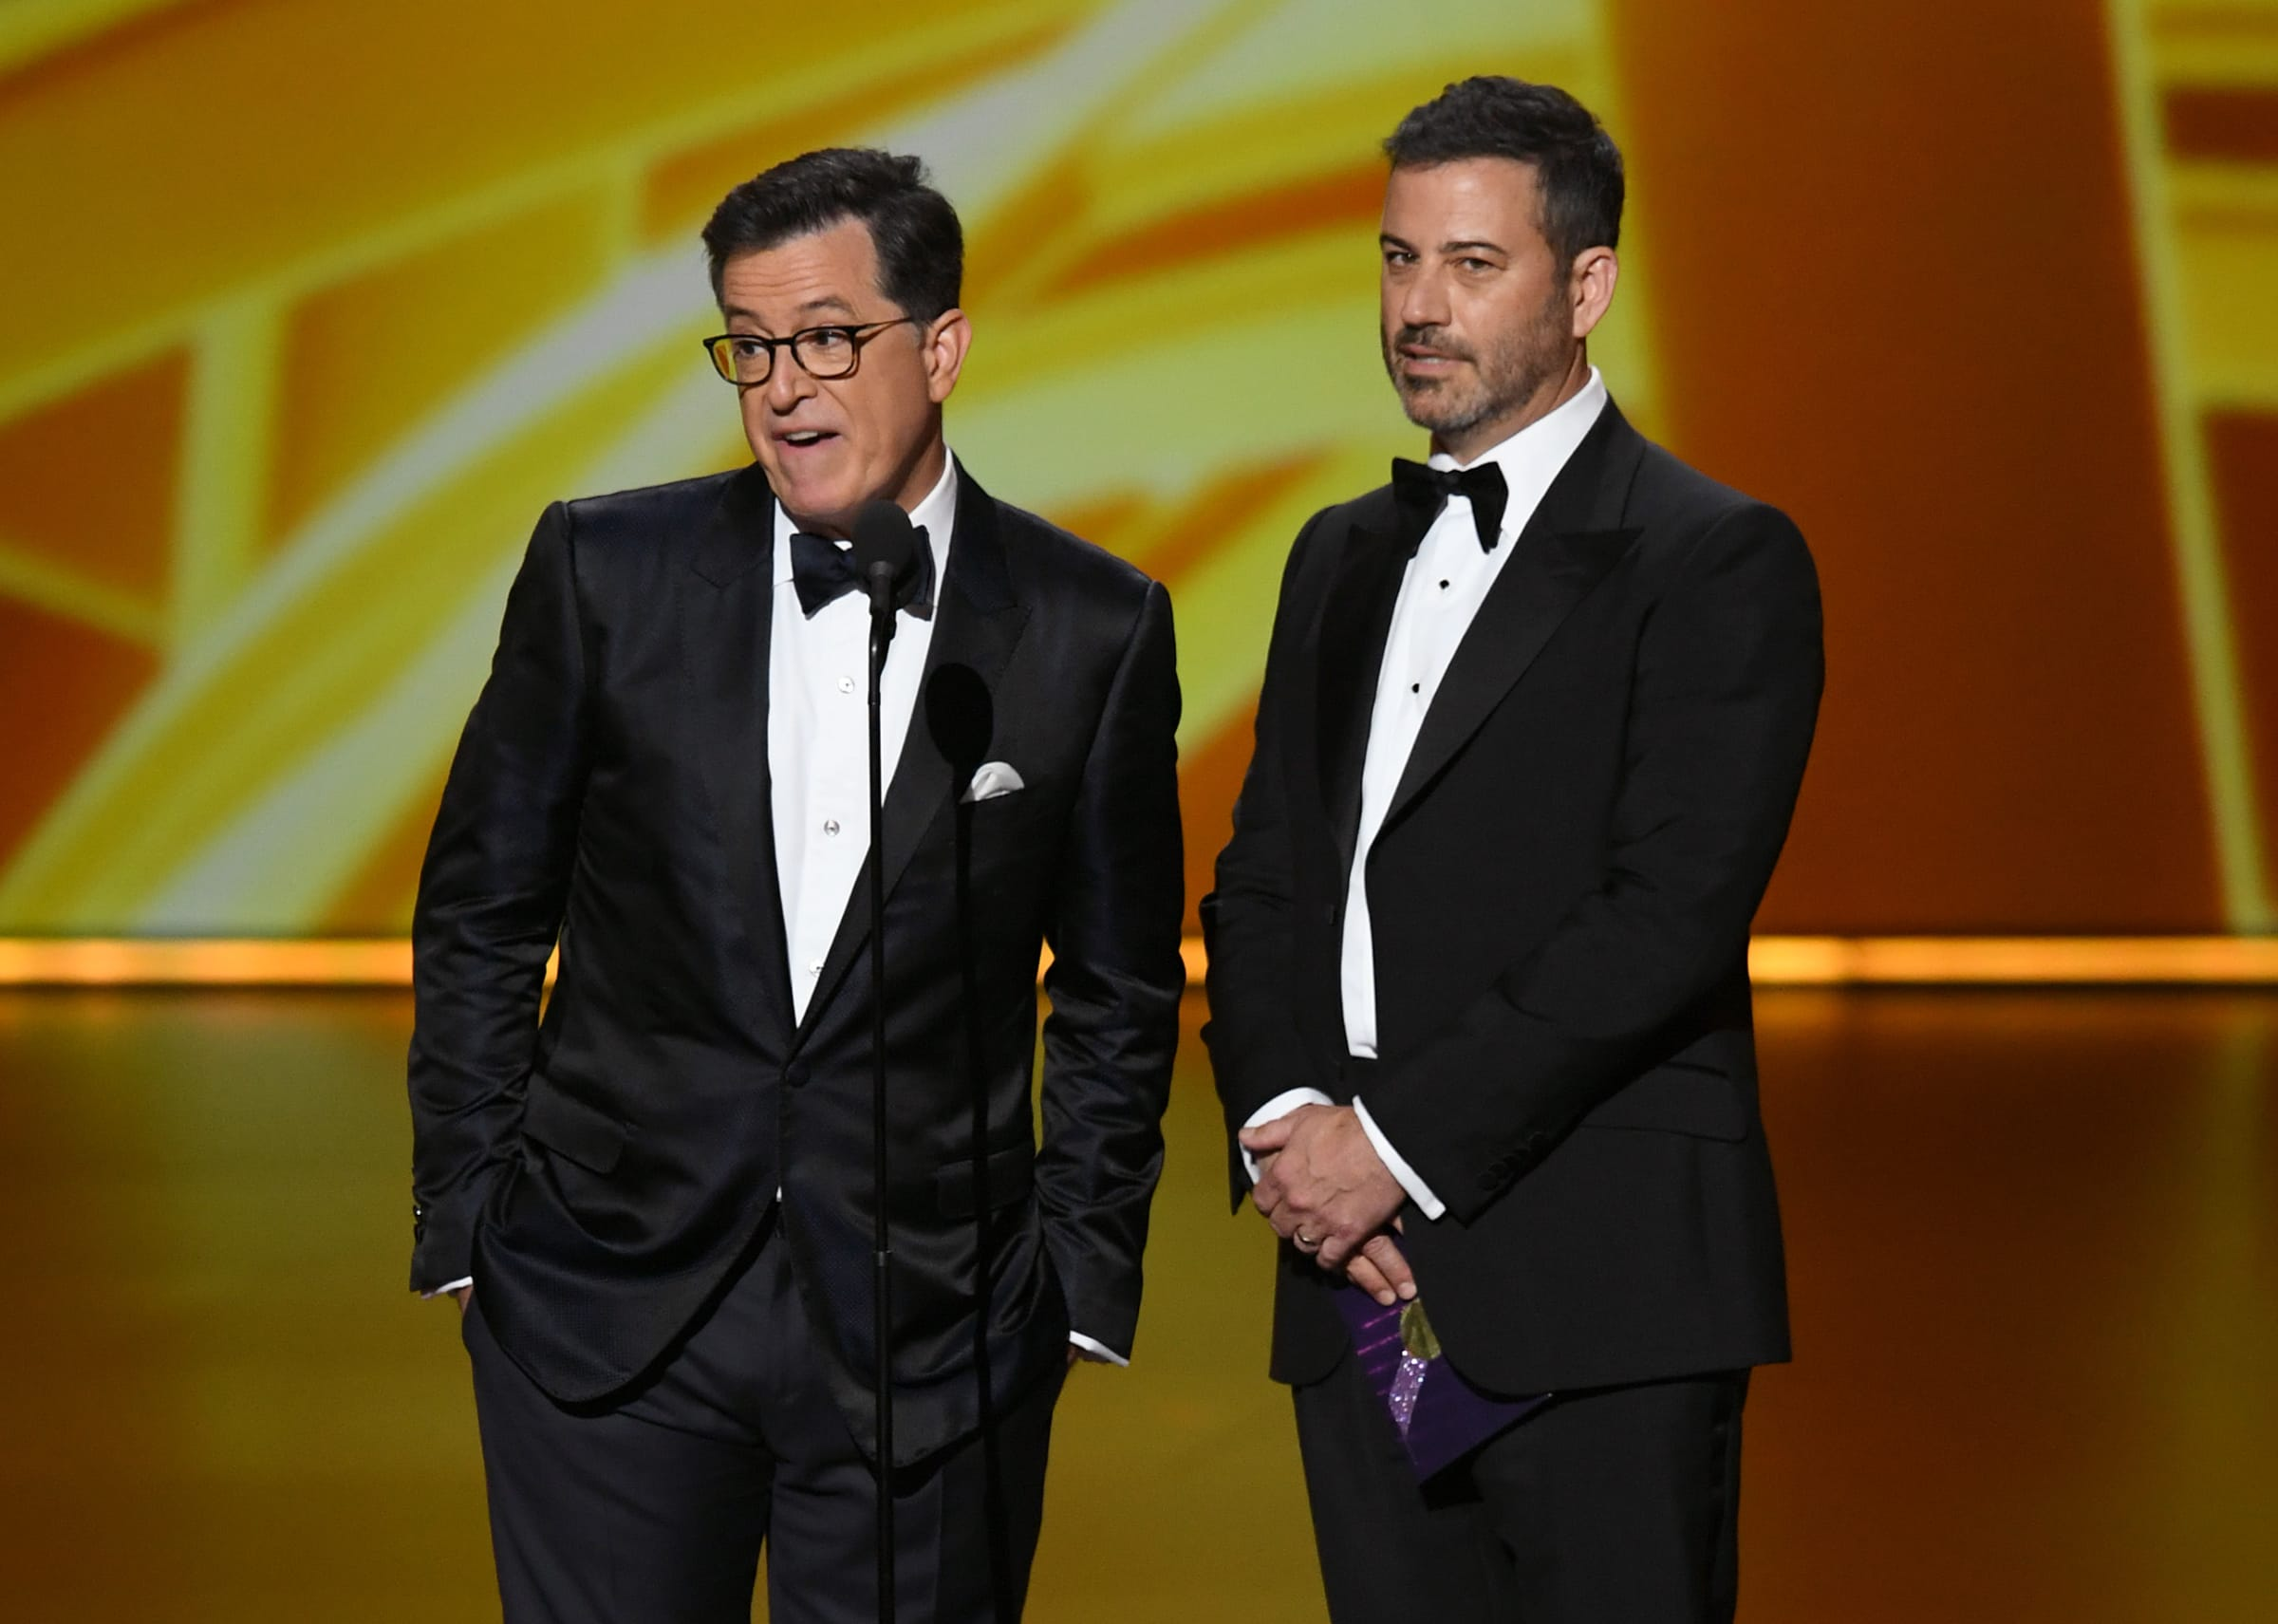 Stephen Colbert and Jimmy Kimmel speak onstage during the 71st Emmy Awards at Microsoft Theater on September 22, 2019, in Los Angeles, California. Kevin Winter/Getty